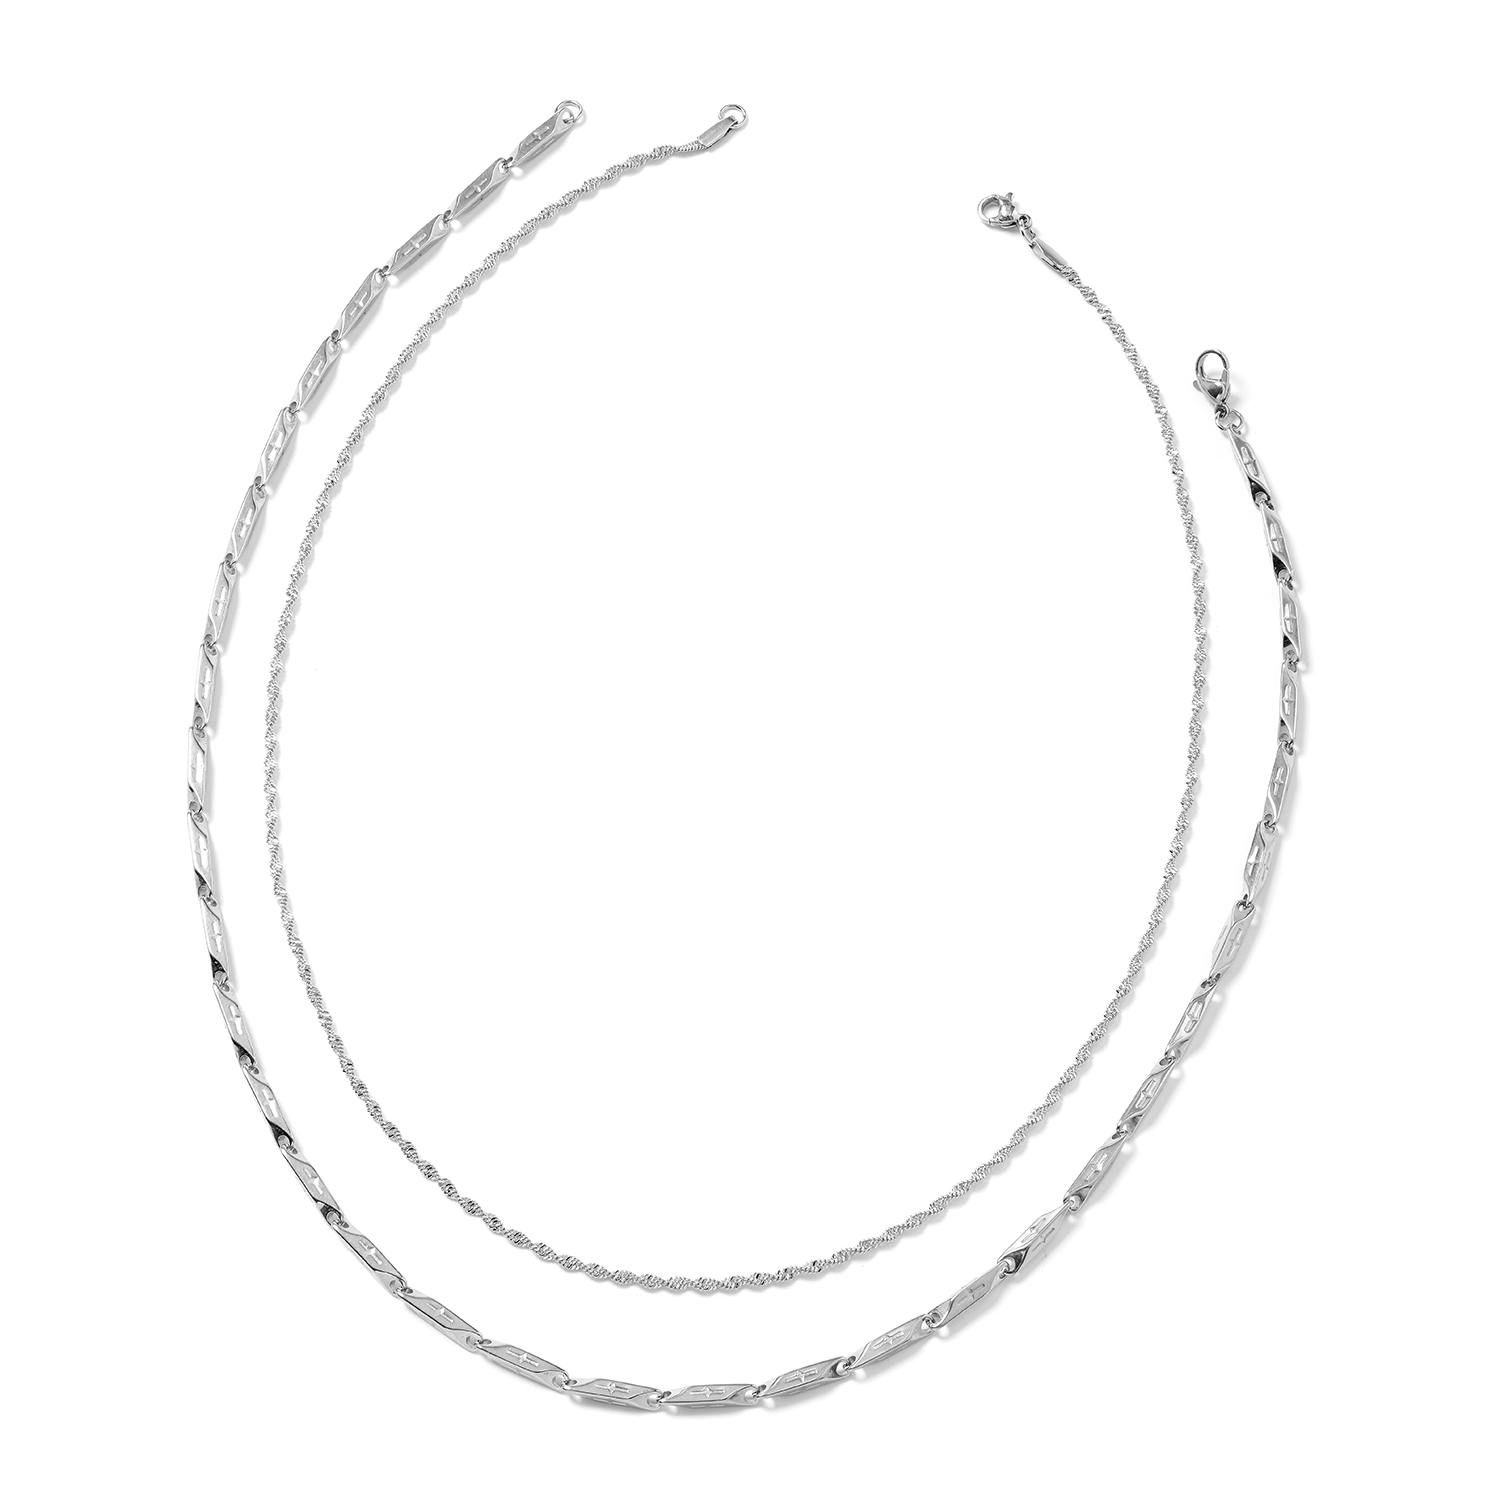 Stainless Steel Set of 2 Singapore and Fancy Link Necklace (20 in)